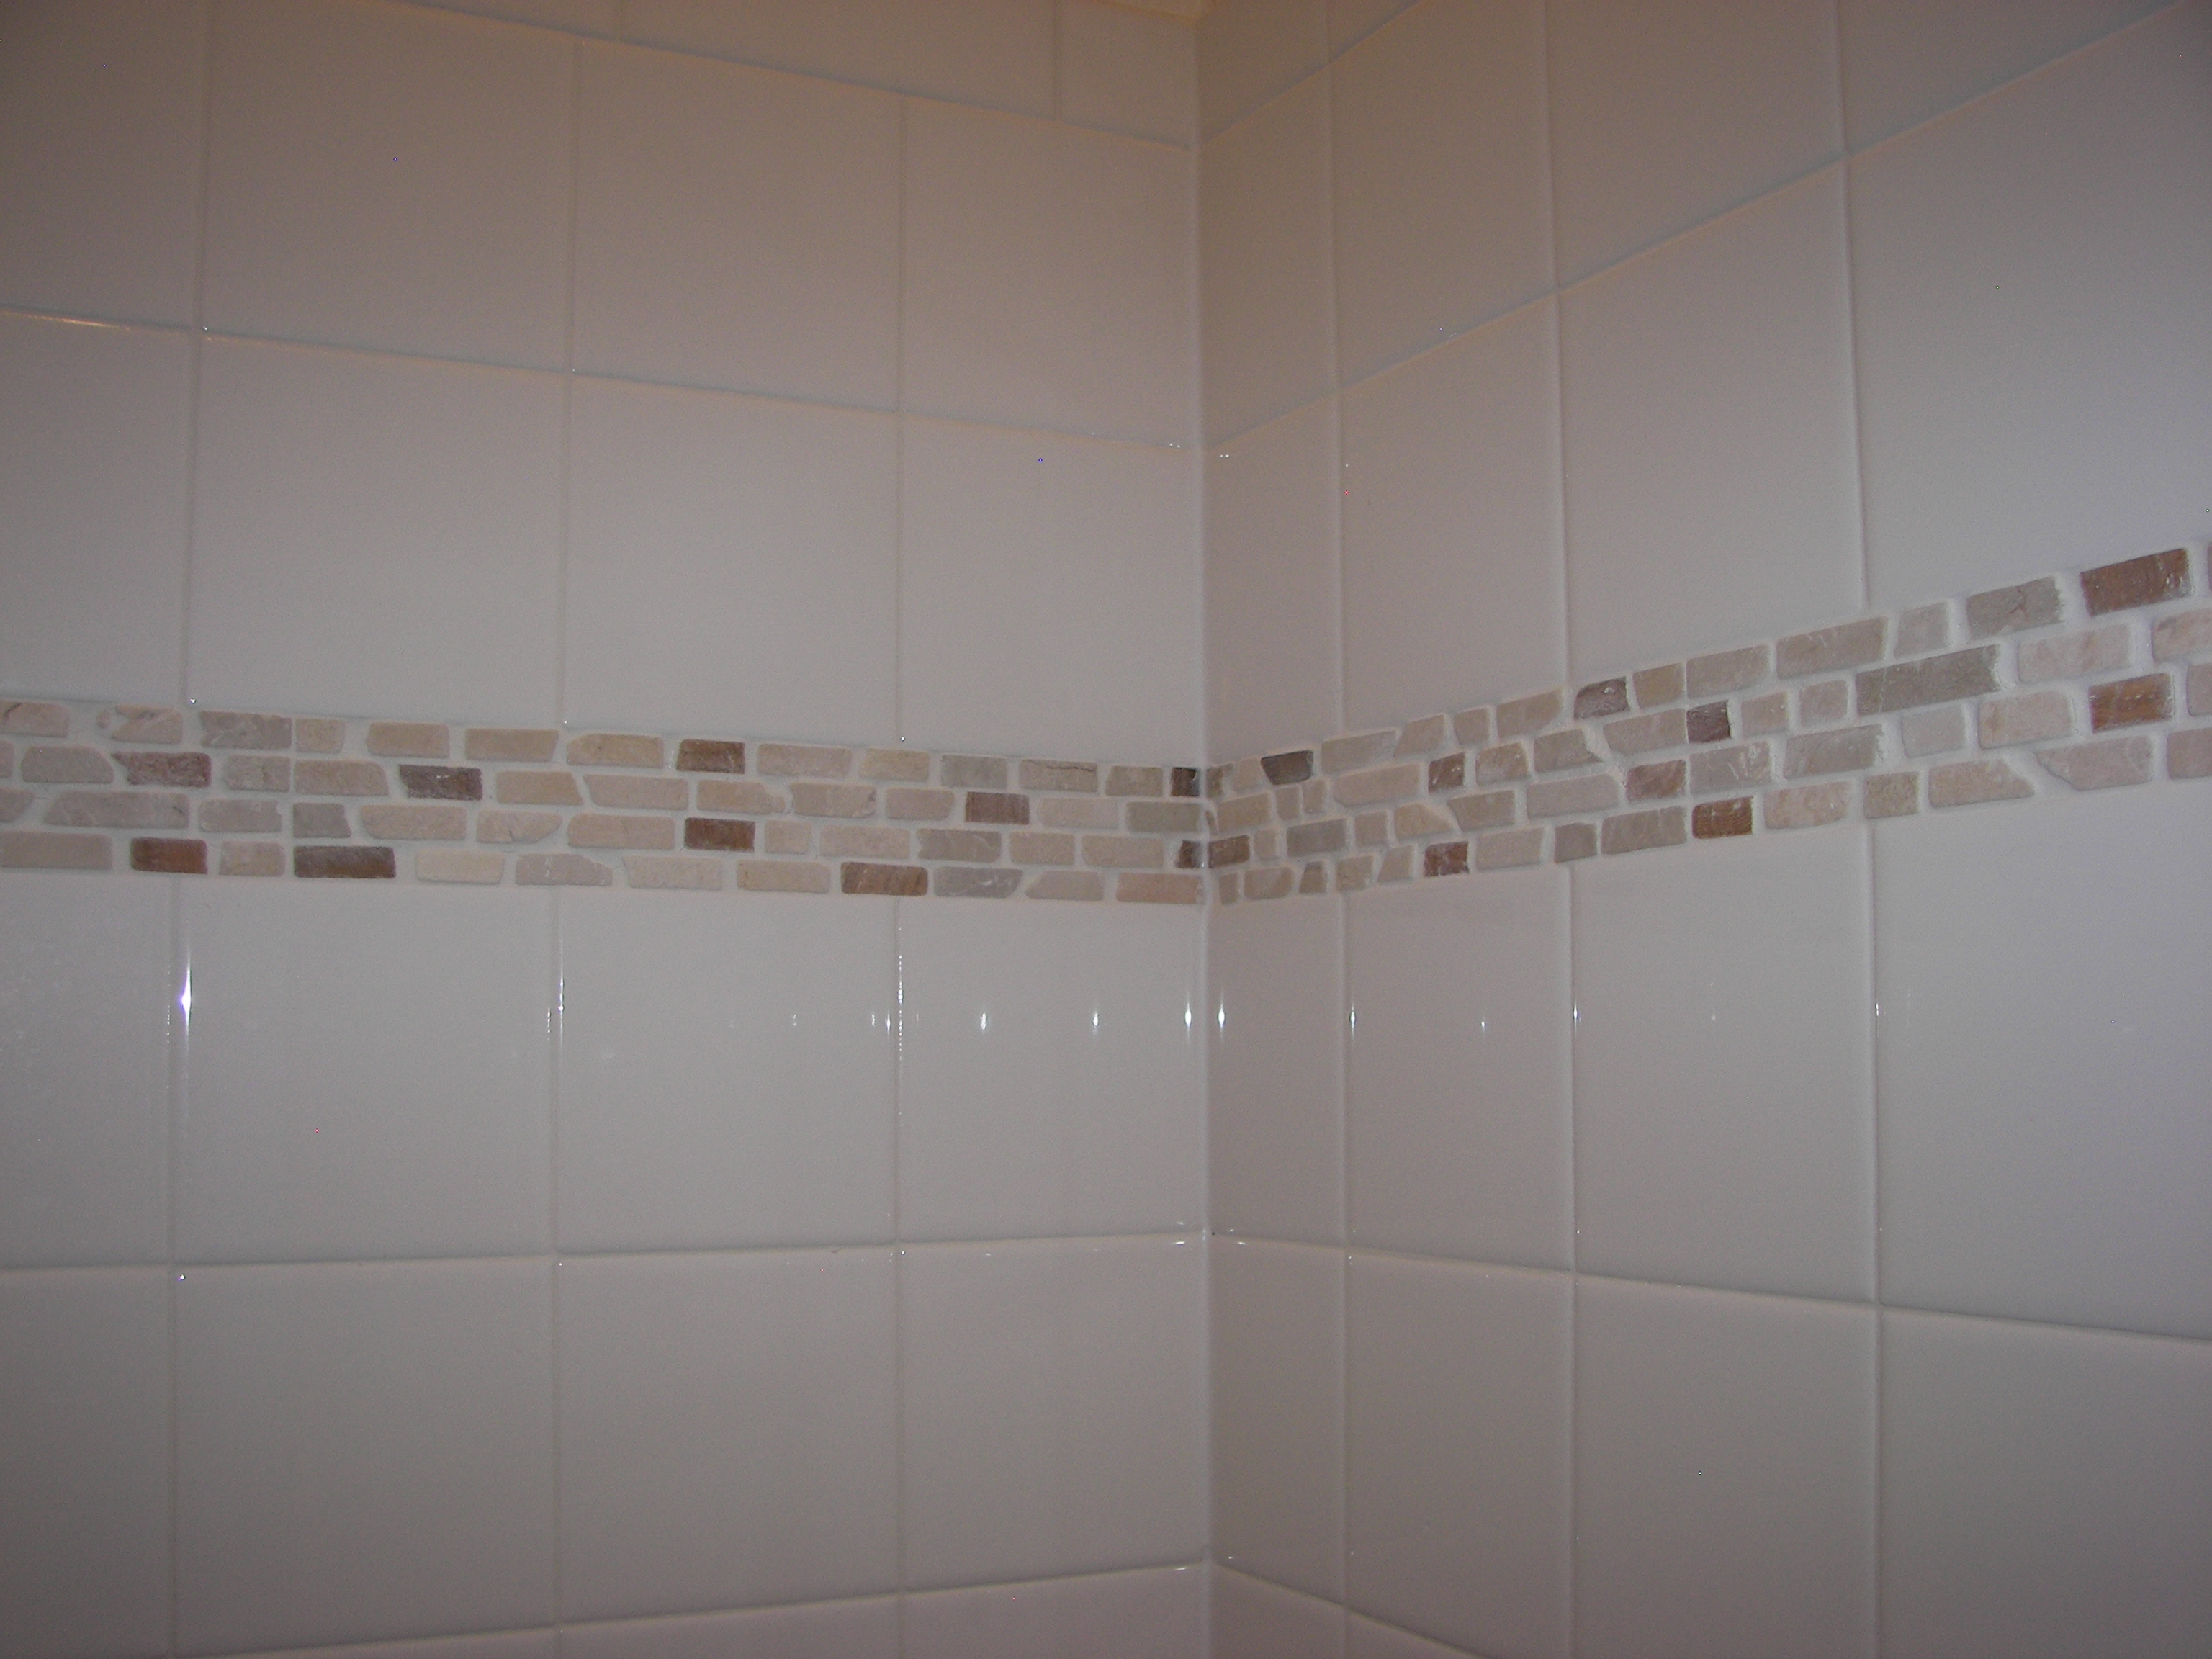 23 24 25 26 - Bathroom Tiles Combination